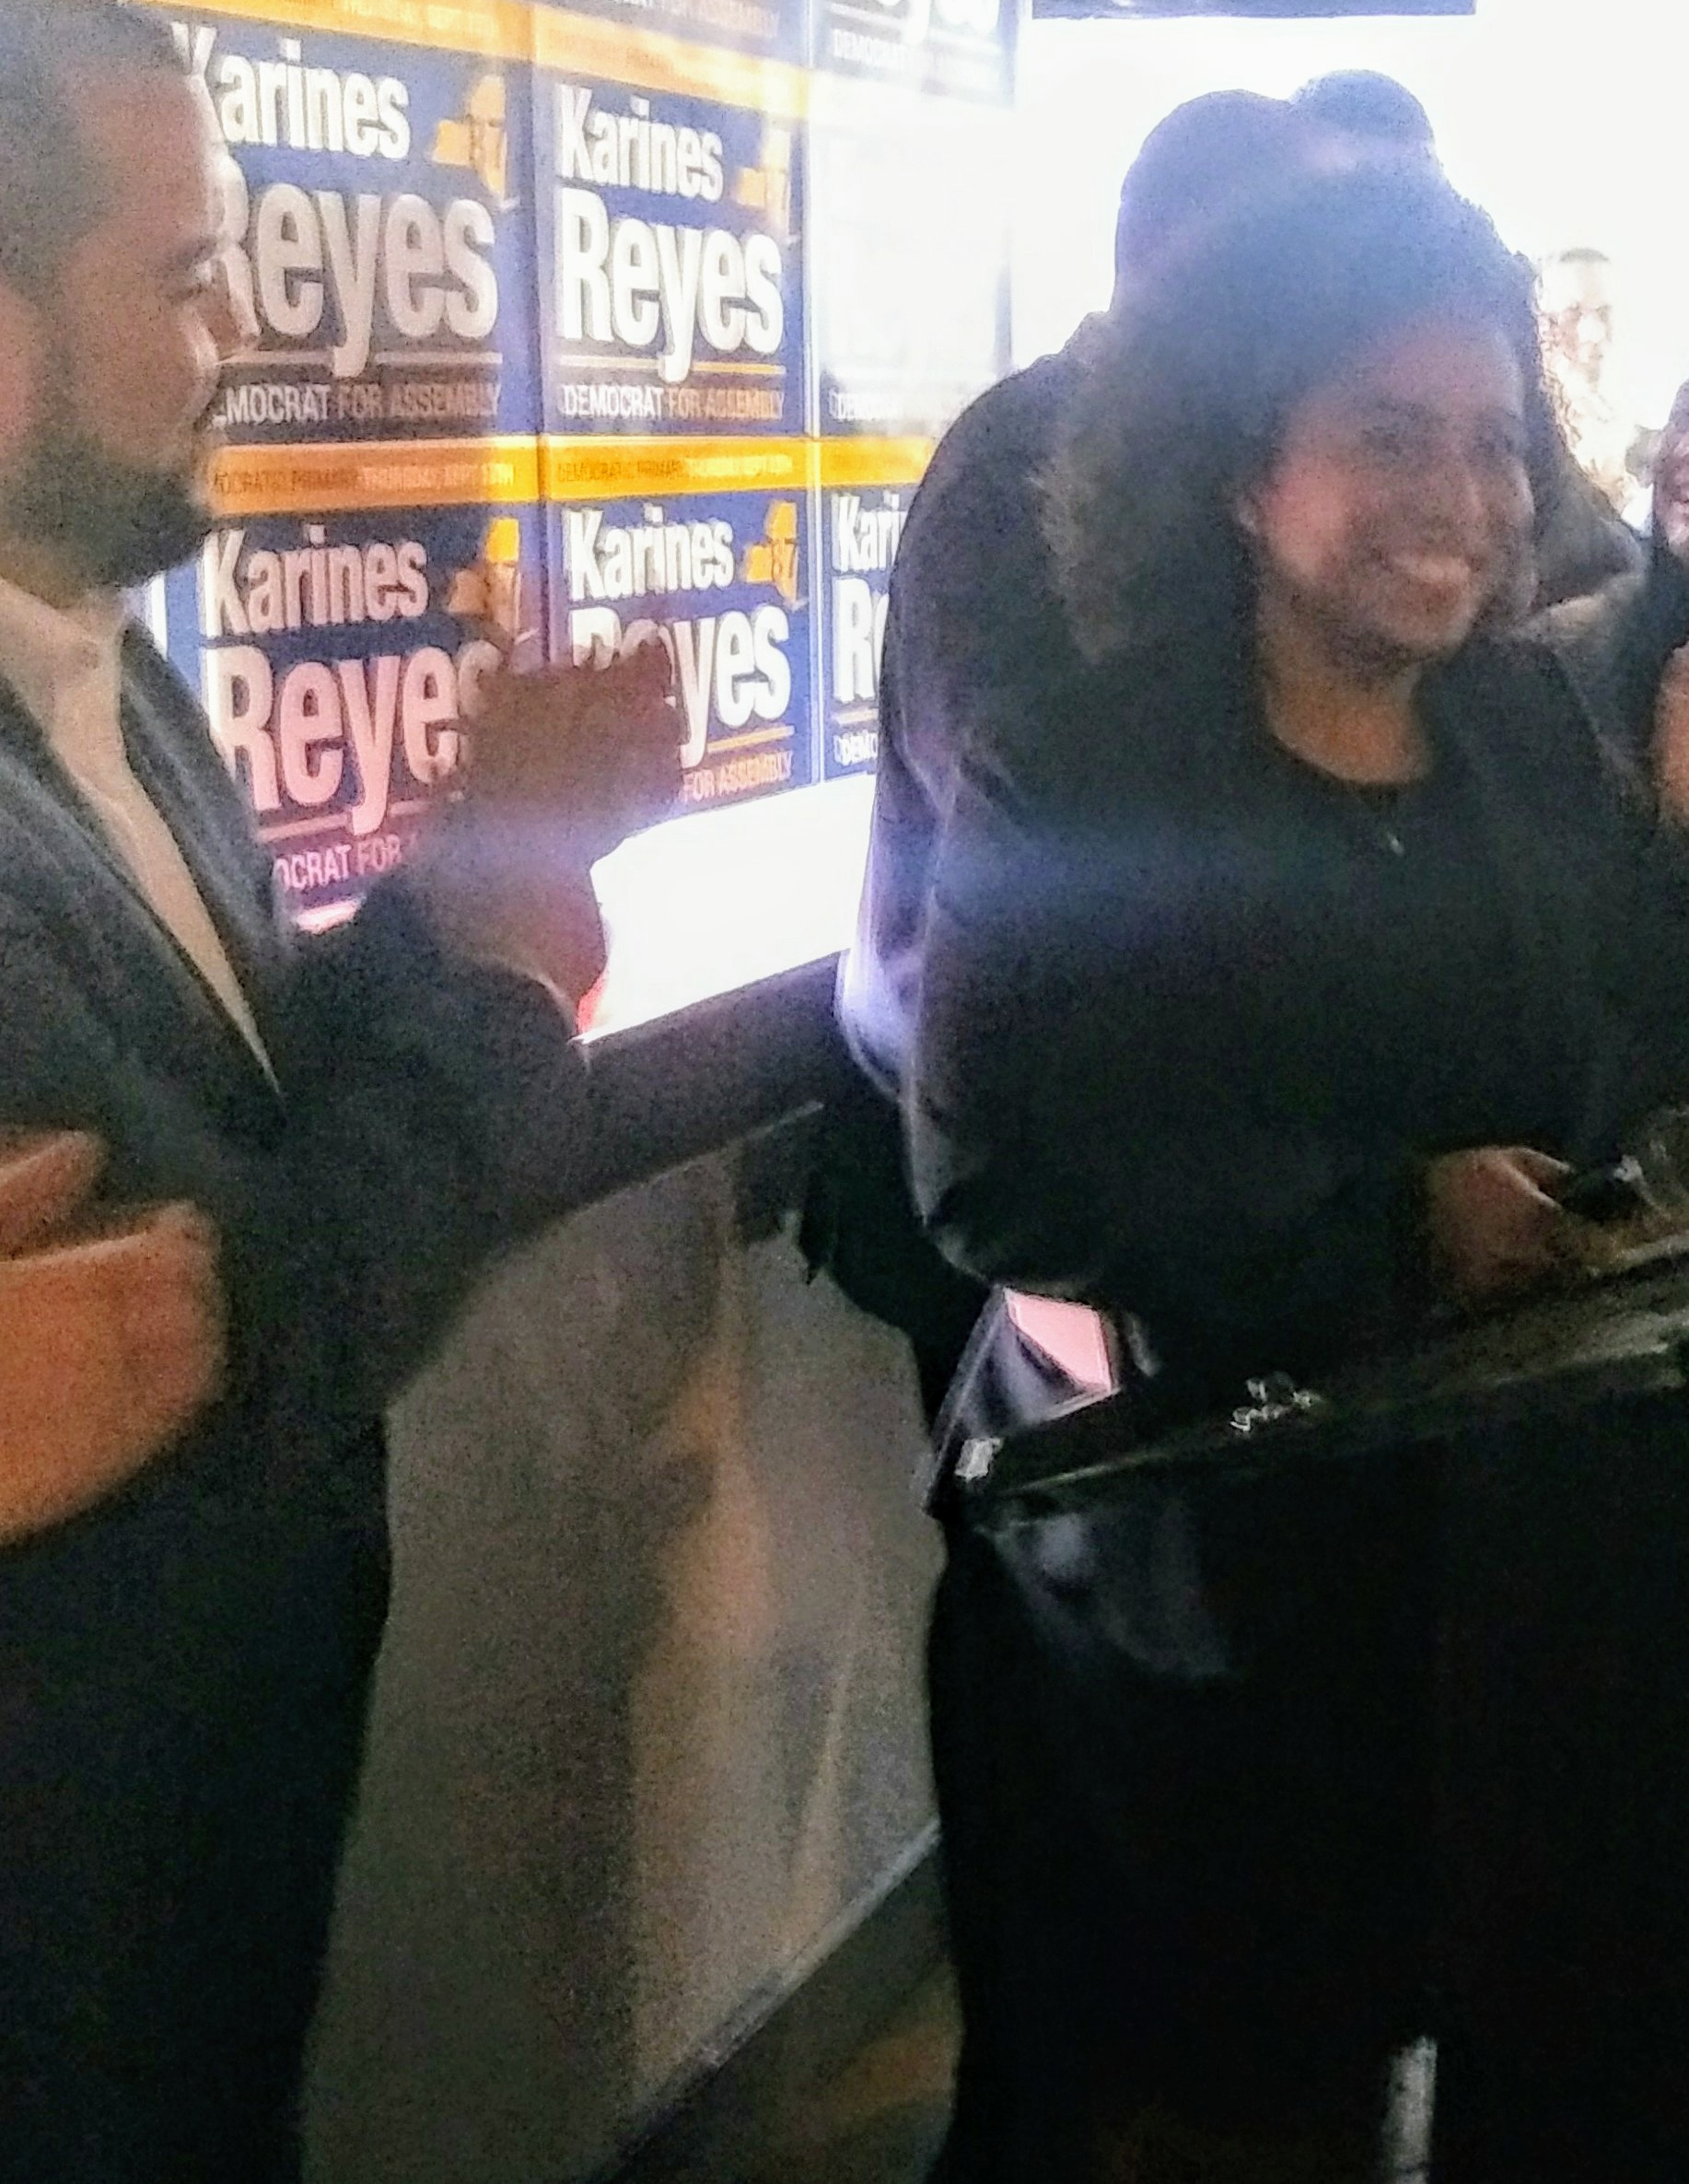 Newcomer Karines Reyes Announces for 87th Assembly District Vacancy